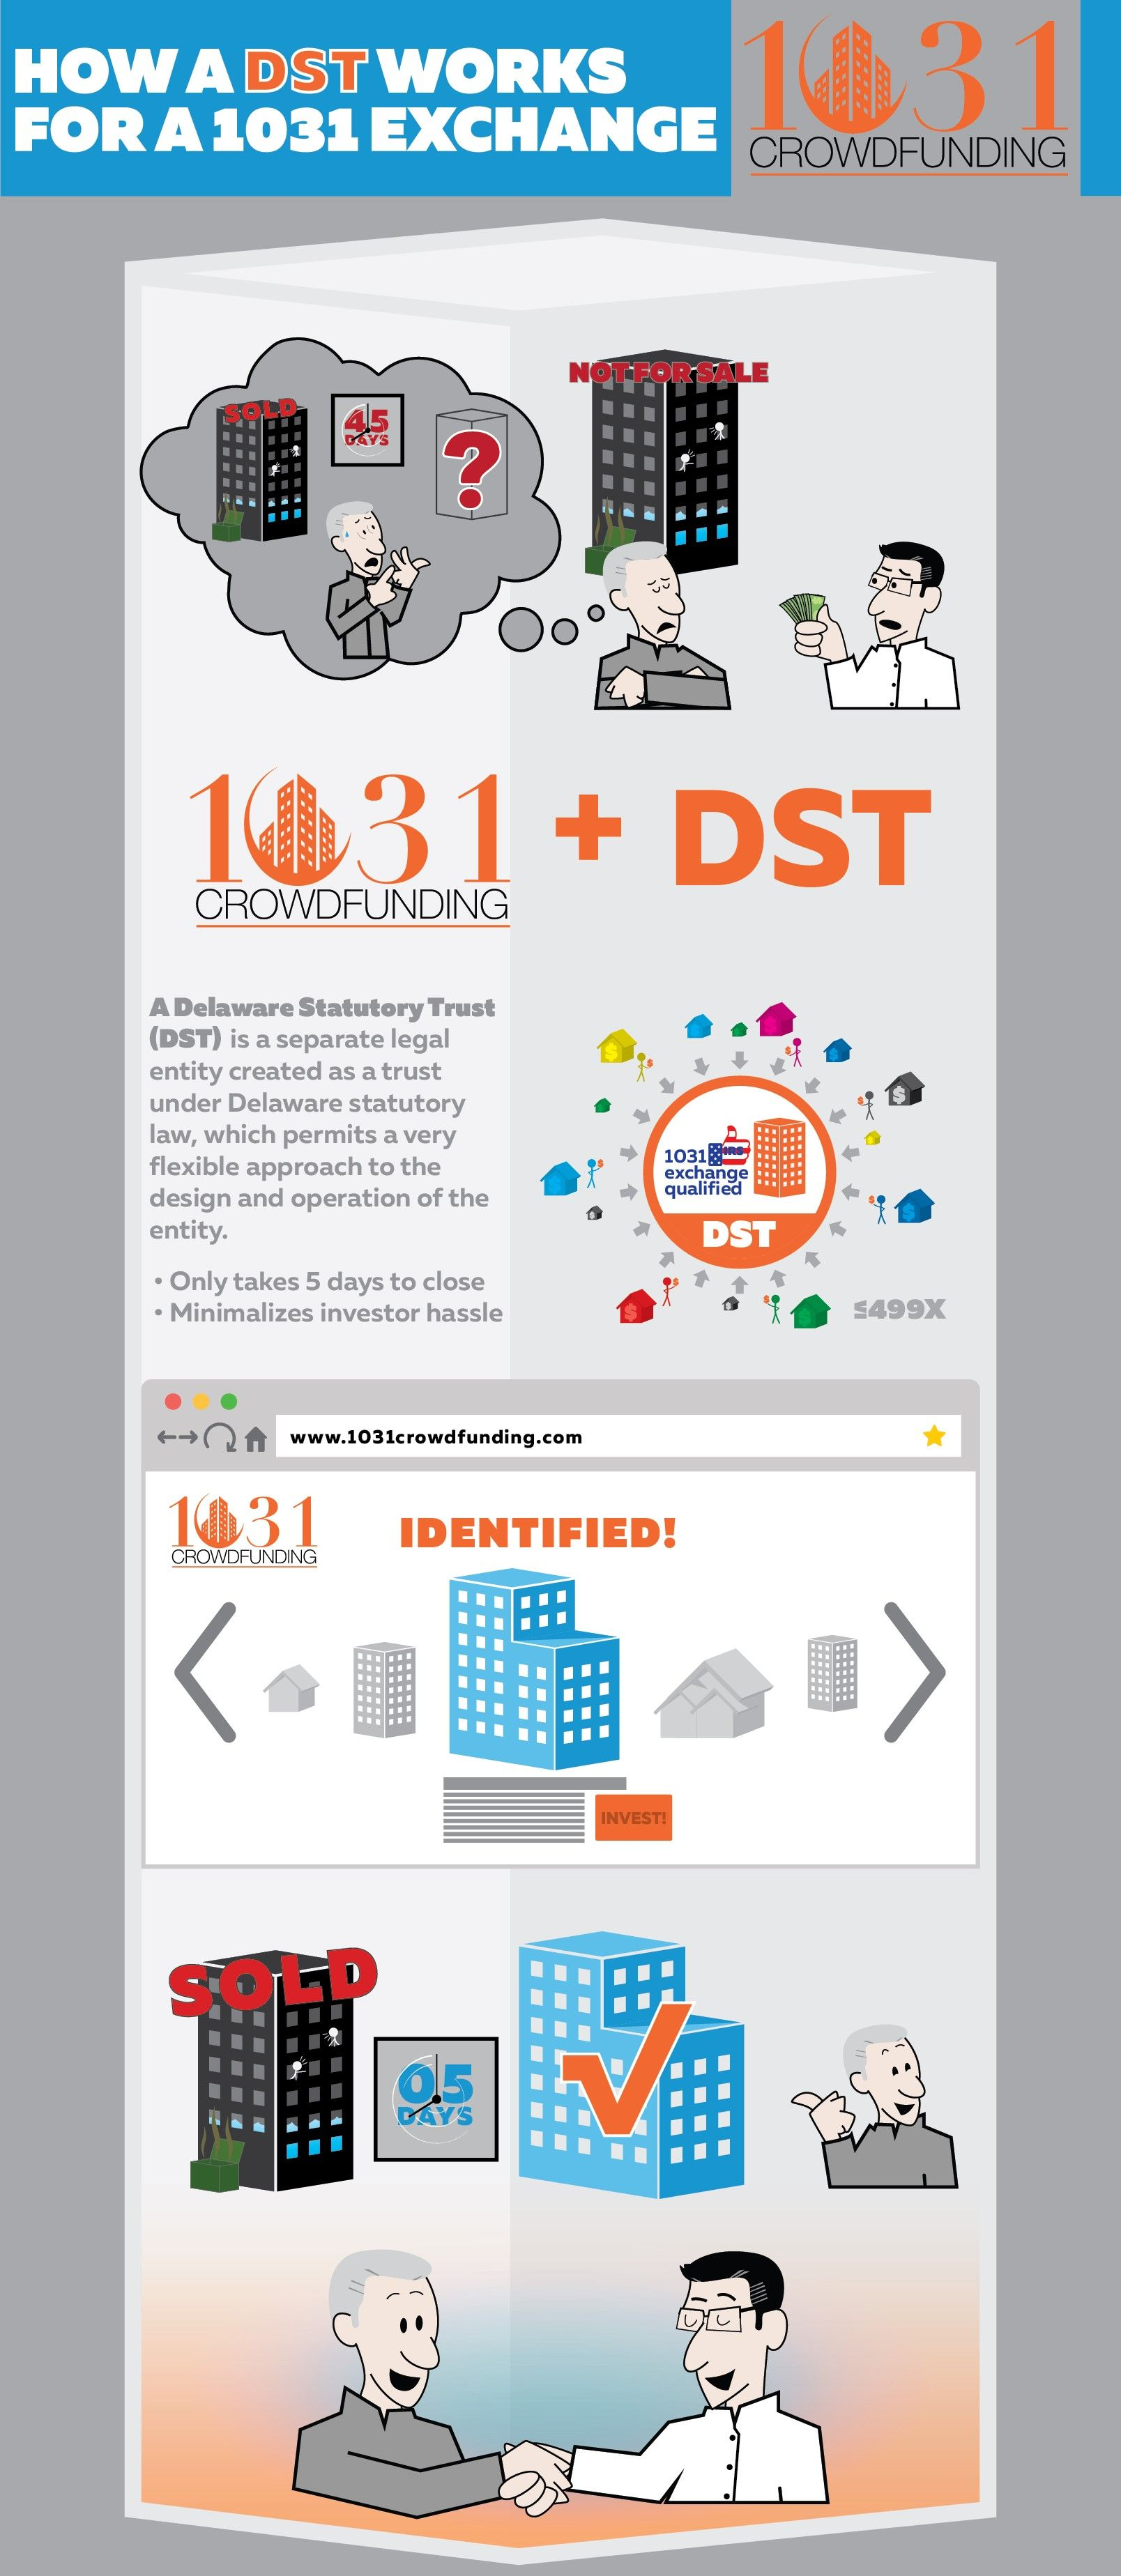 How a DST works for a 1031 Exchange